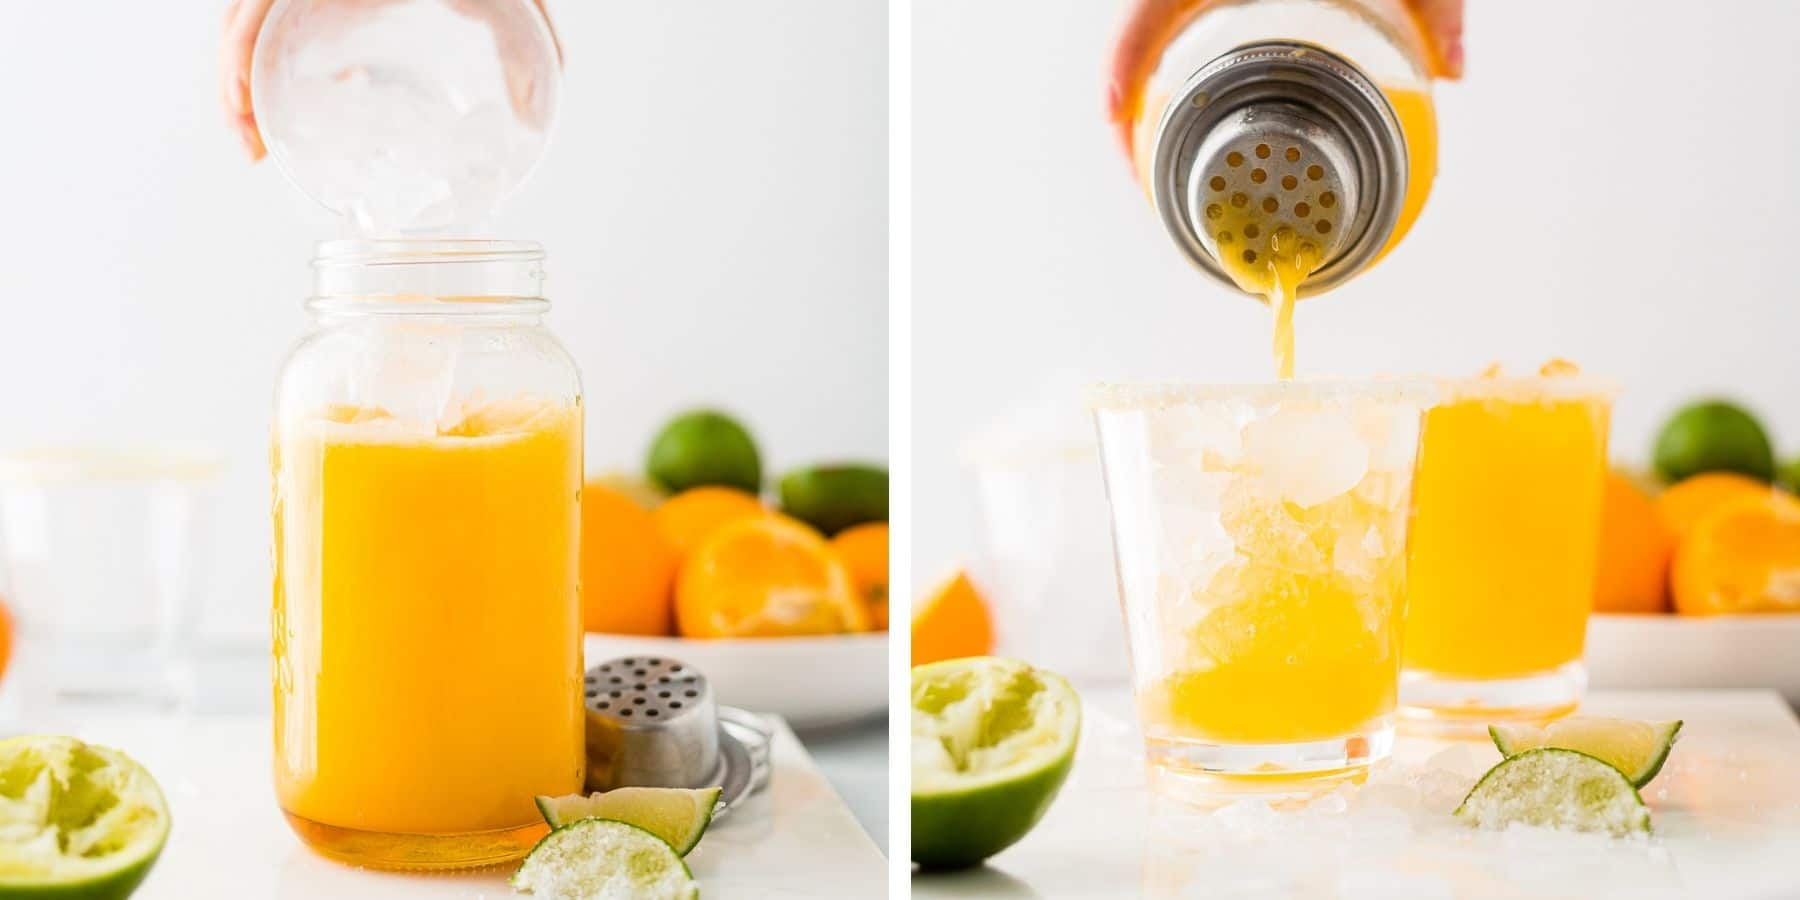 two step by step pictures showing you how to make mango margaritas in a shaker and then pouring them over a glass filled with ice